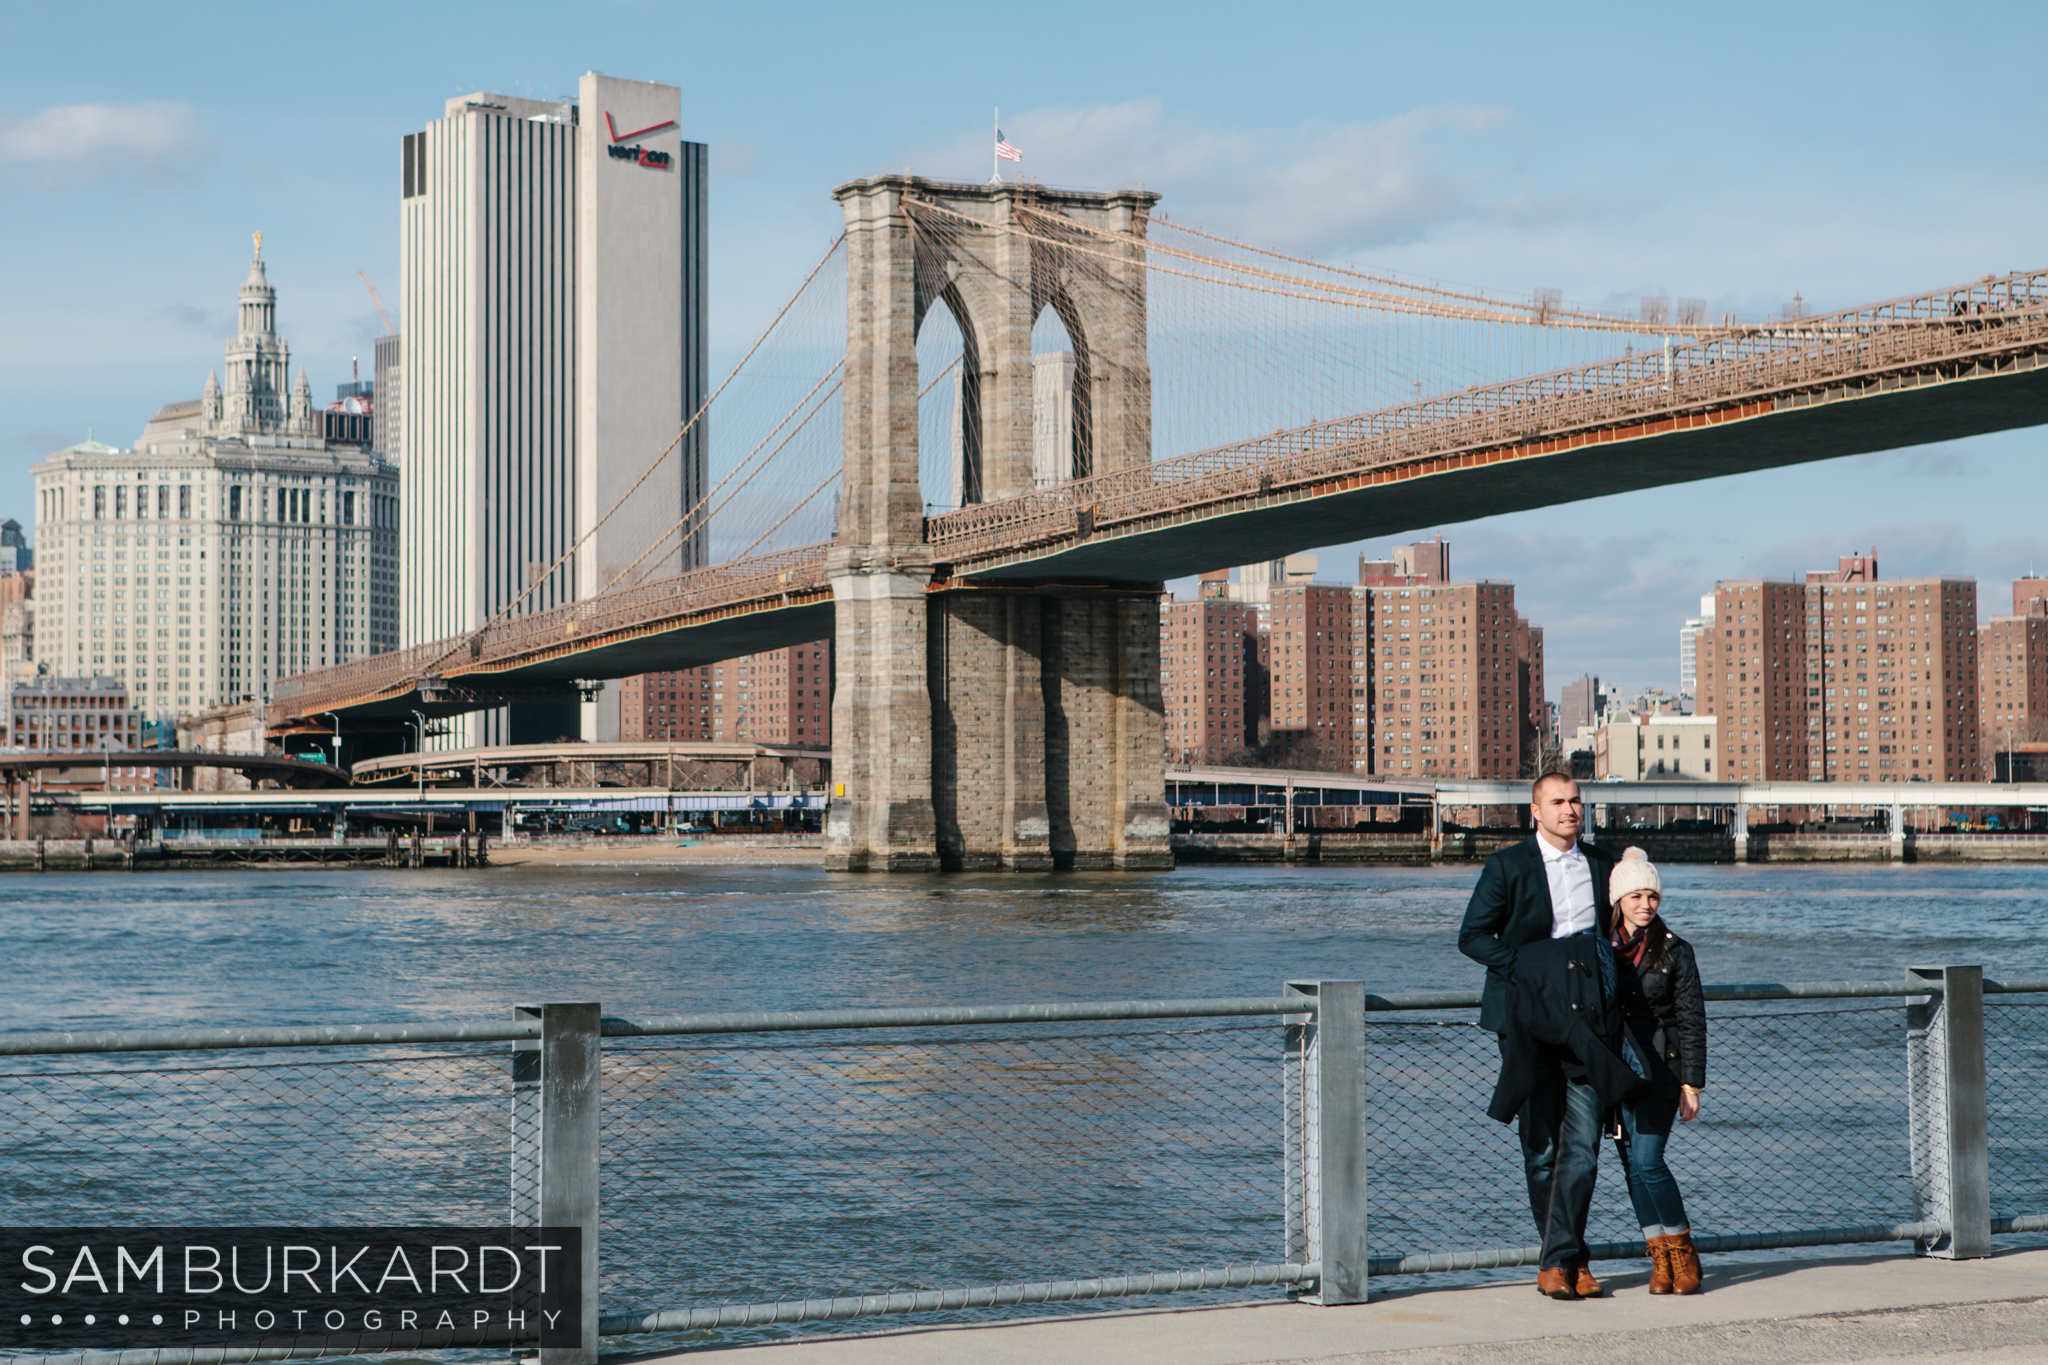 samburkardt_brooklyn_bridge_new_york_engagement_proposal_skyline_0003.jpg